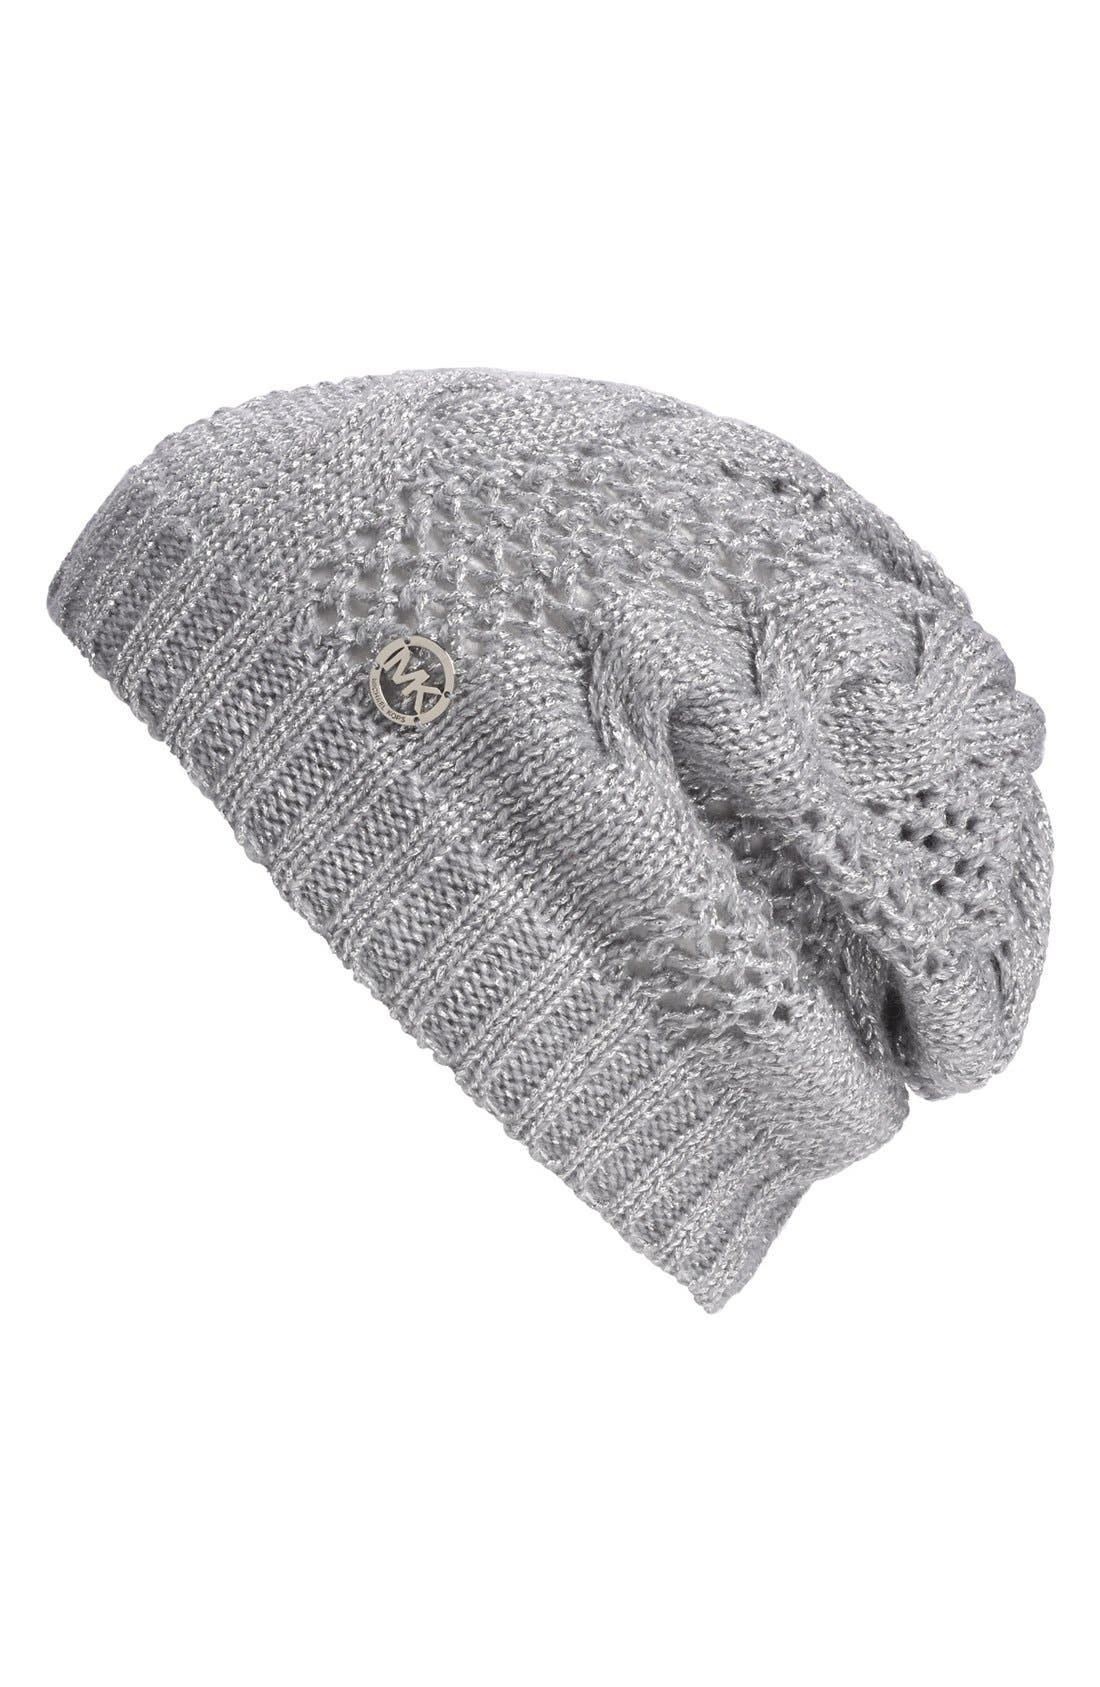 Alternate Image 1 Selected - MICHAEL Michael Kors Metallic Knit Beanie